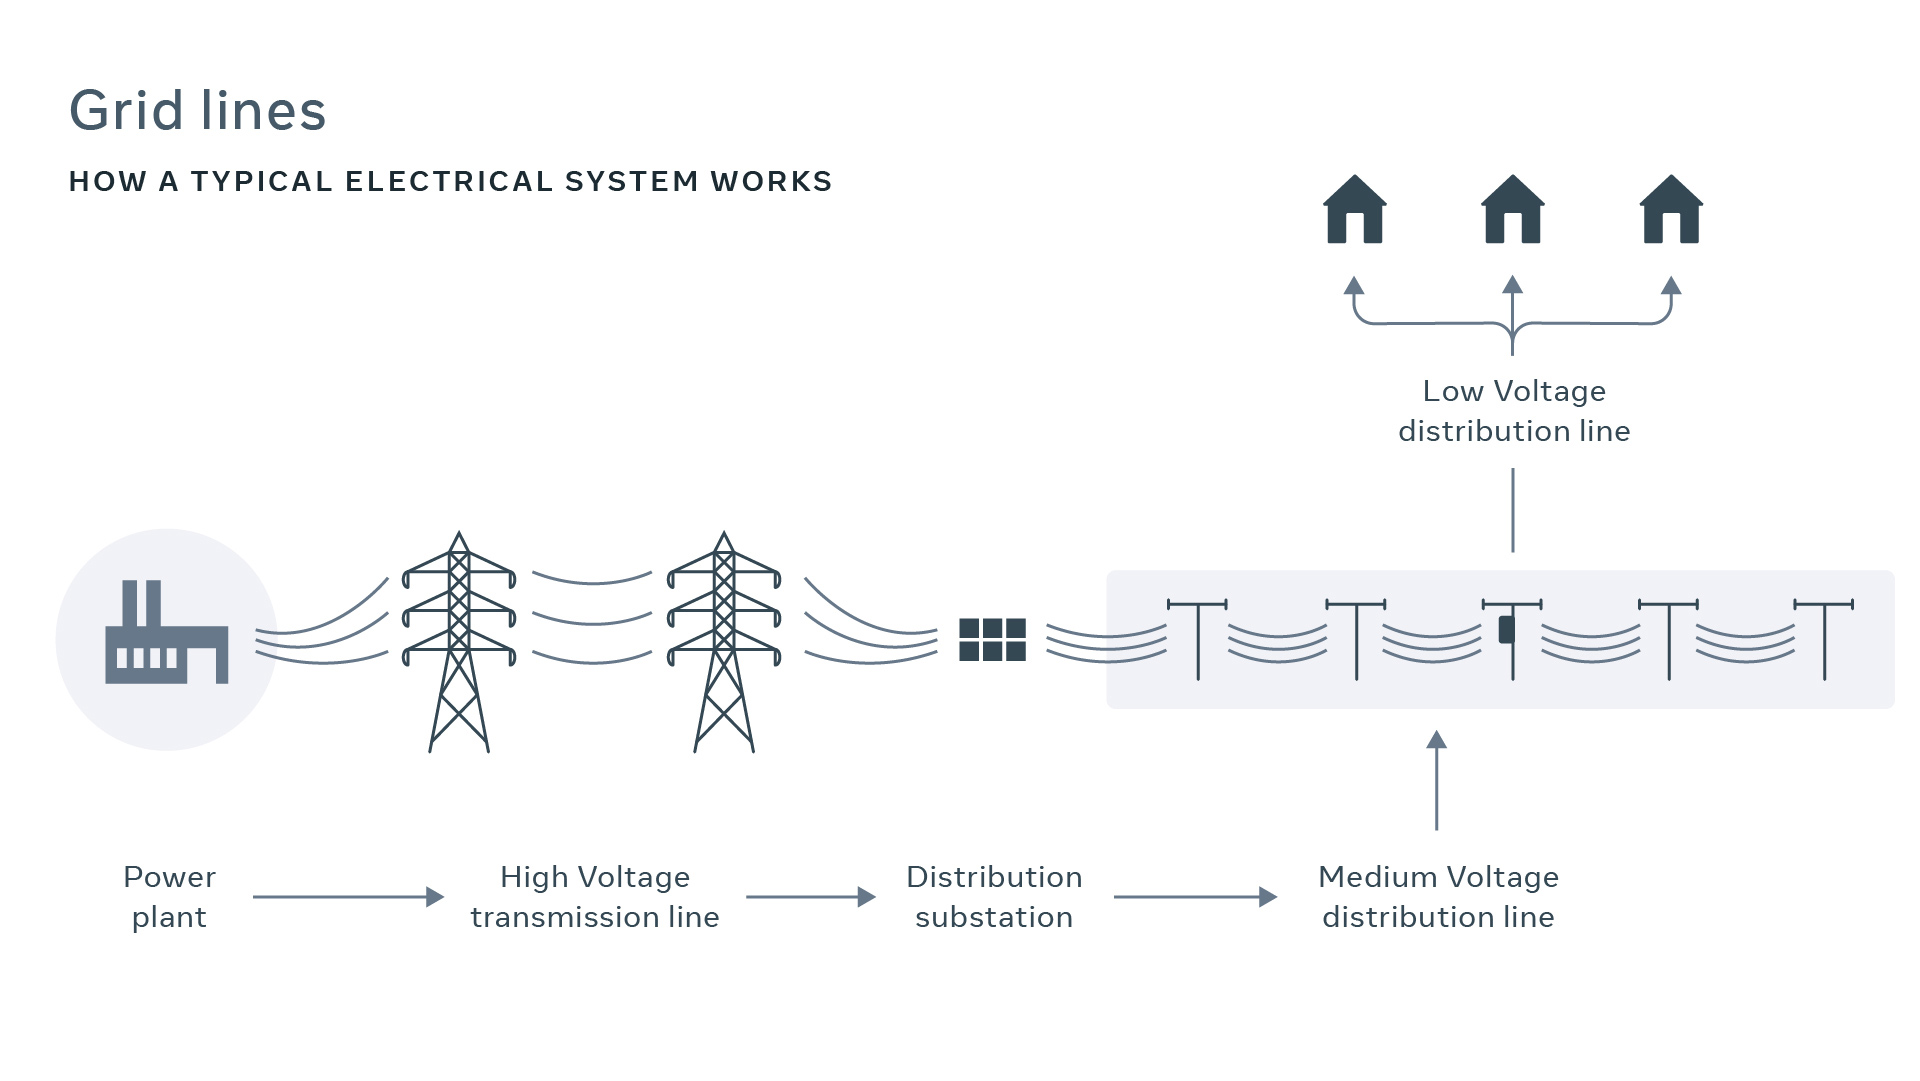 Making aerial fiber deployment faster and more efficient by deploying fiber on live electrical grid lines